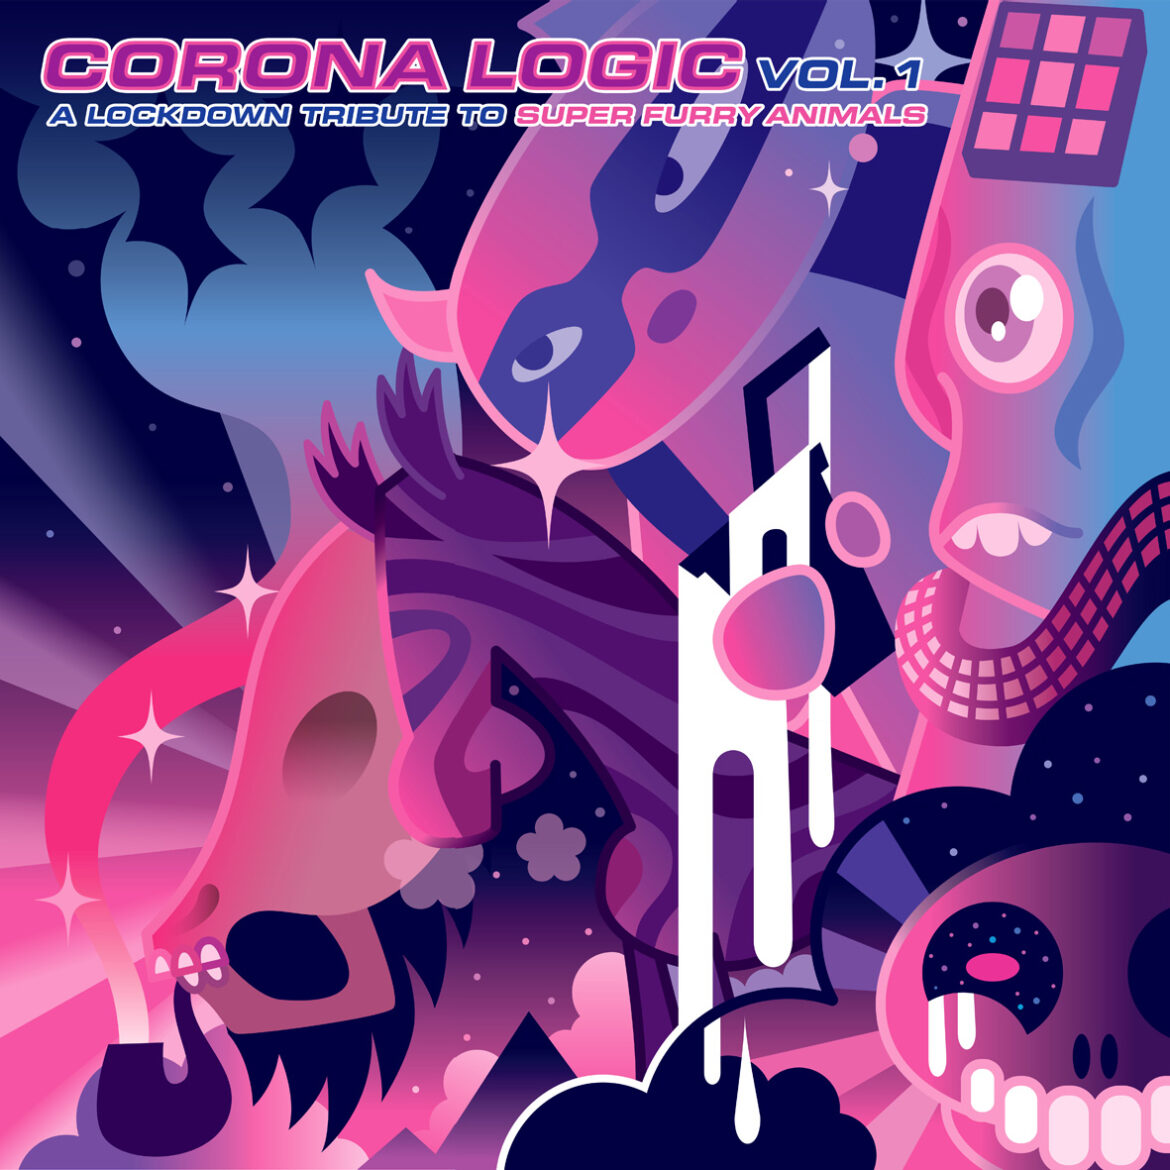 NEWS: Corona Logic: 28-track Super Furry Animals covers album announced in aid of Llamau